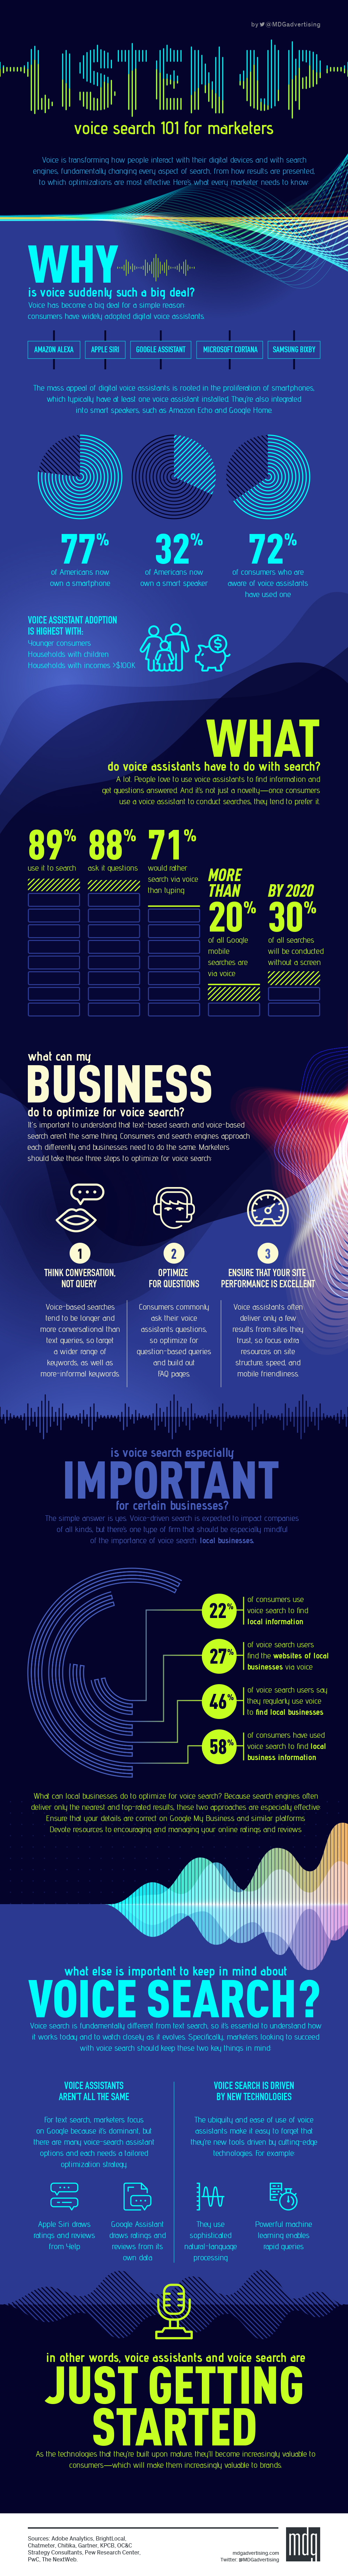 Listen Up: Voice Search 101 for Marketers [Infographic]